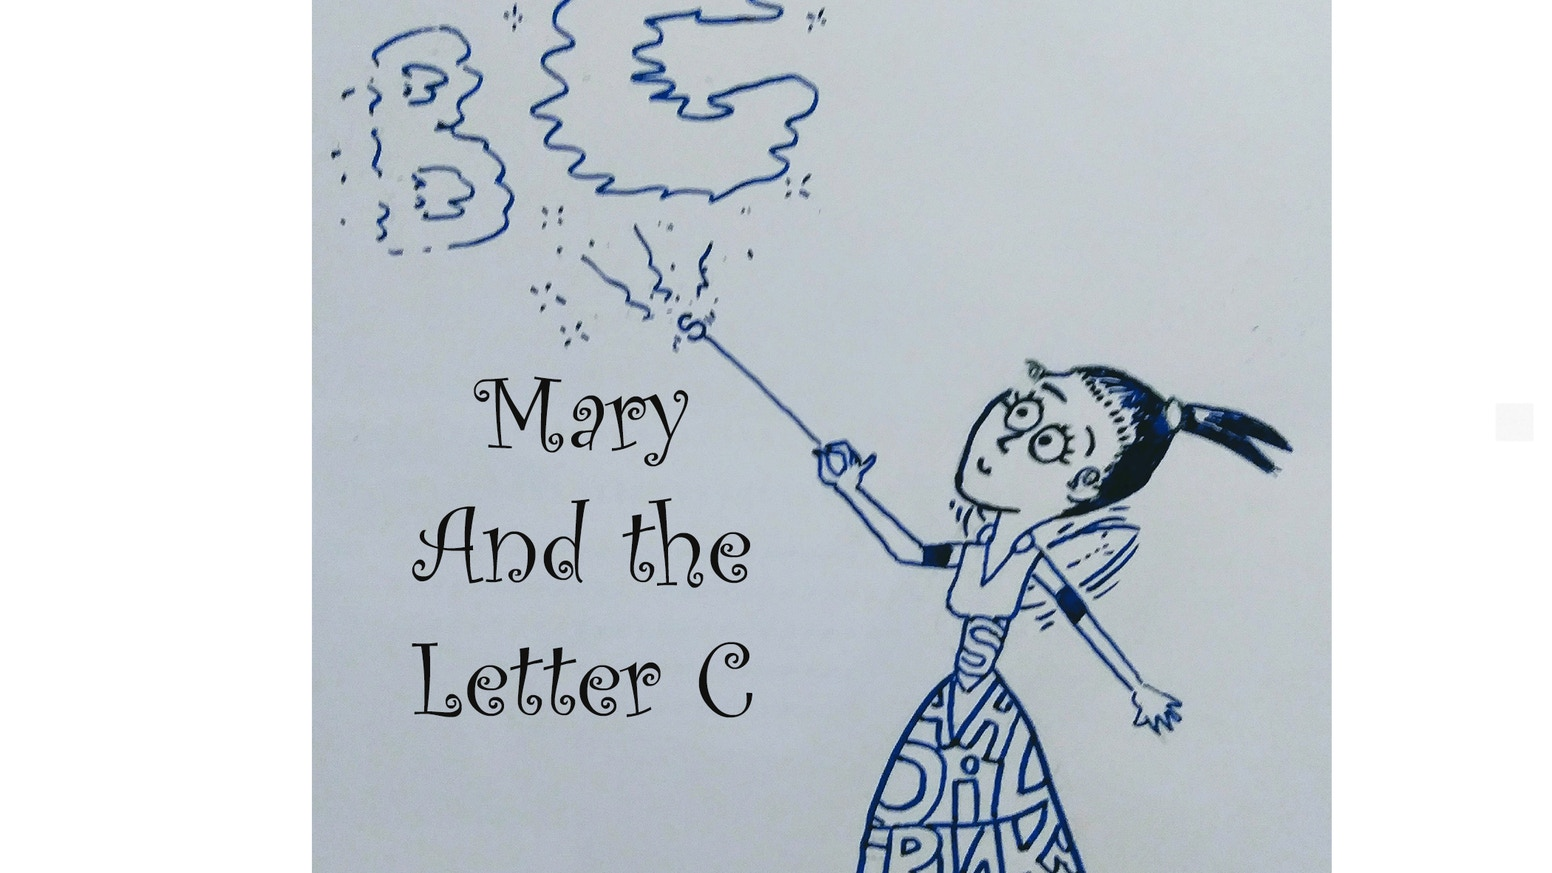 Mary and the Letter C